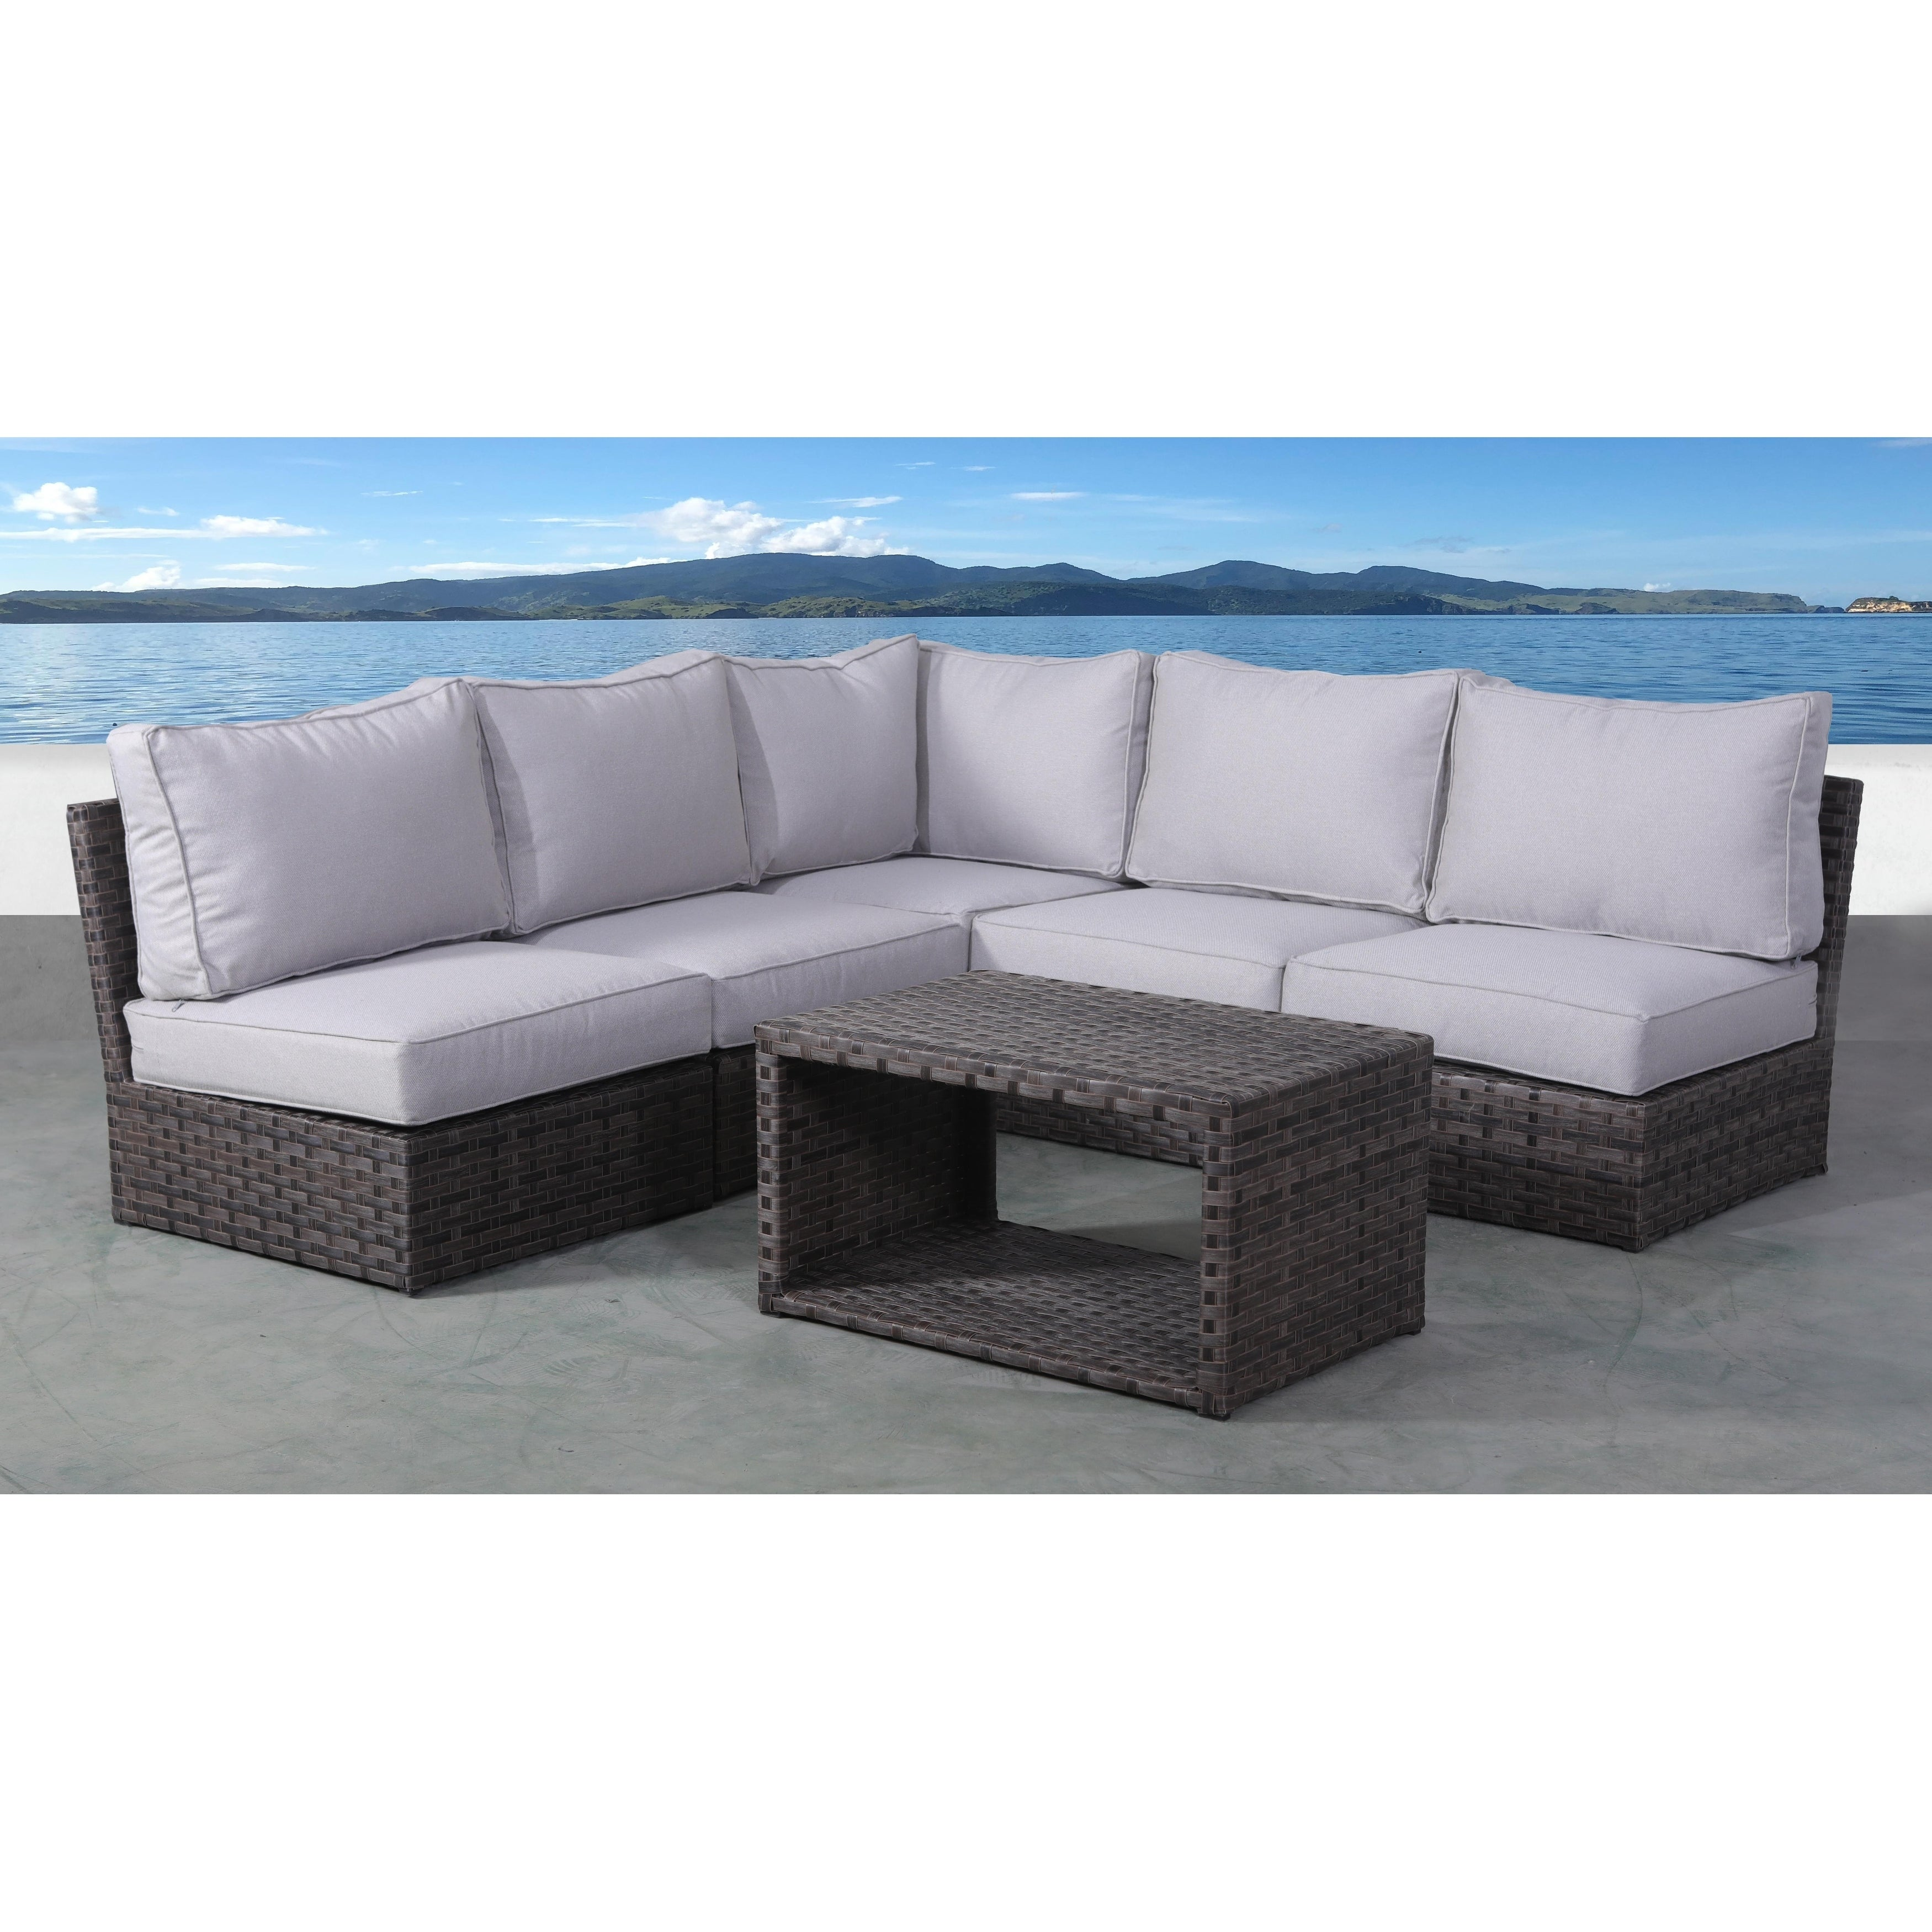 6 Piece Rattan Sectional Seating Group With Cushions On Sale Overstock 27863695